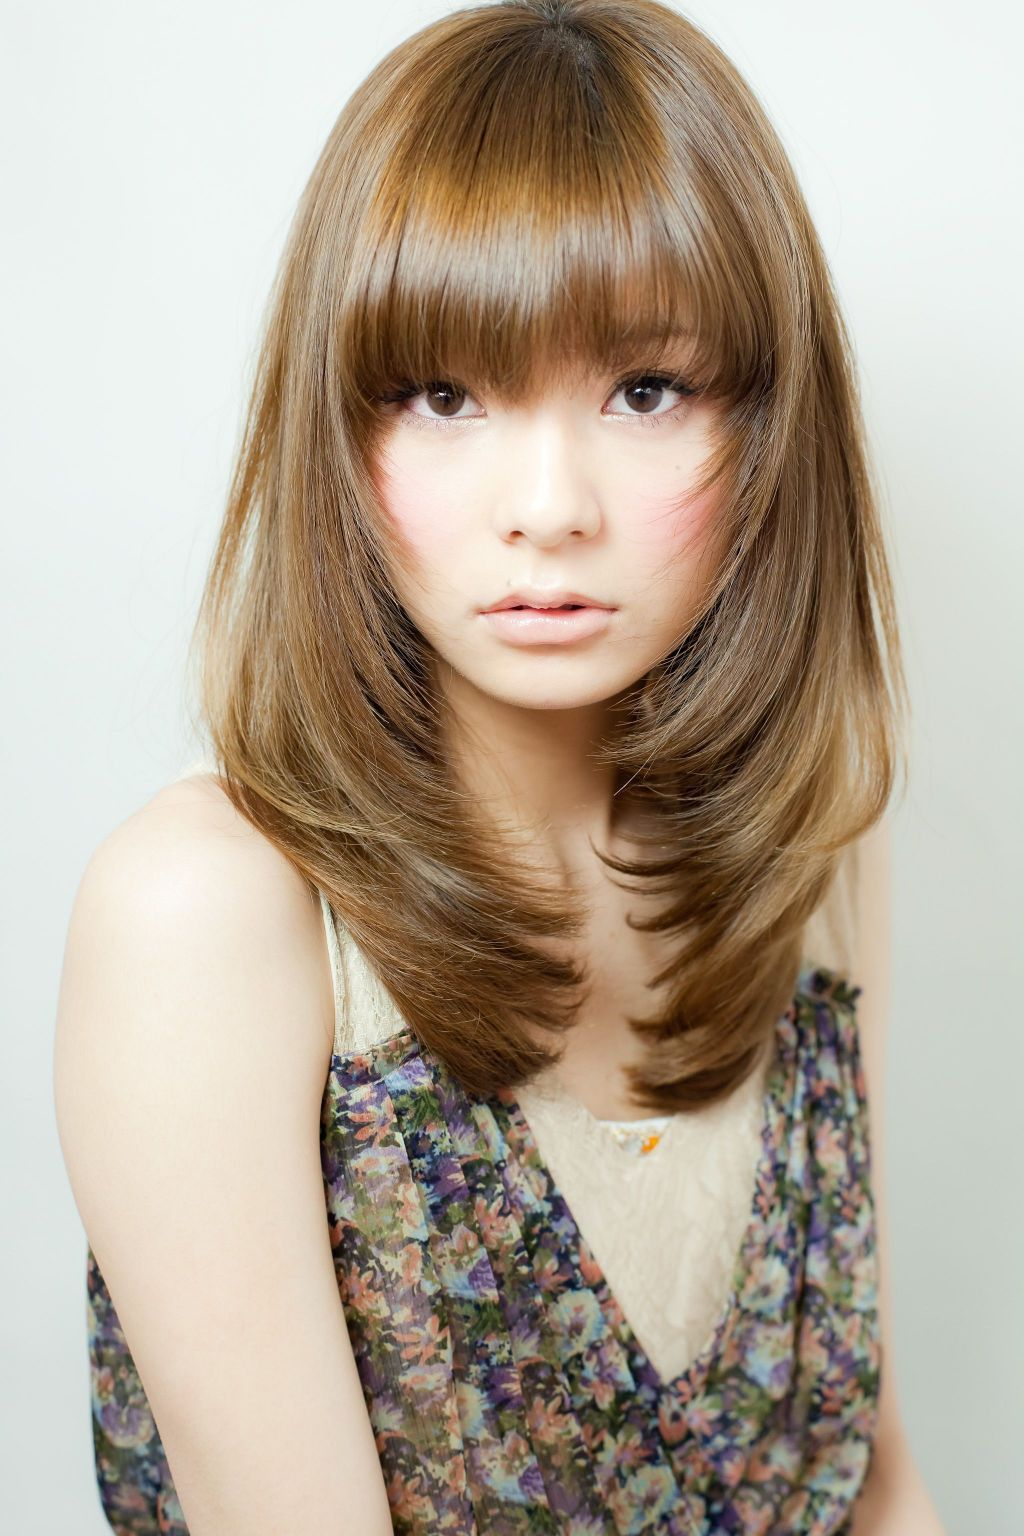 Medium asiatische Frisur | Neu Frisuren 2019 | Pinterest ...